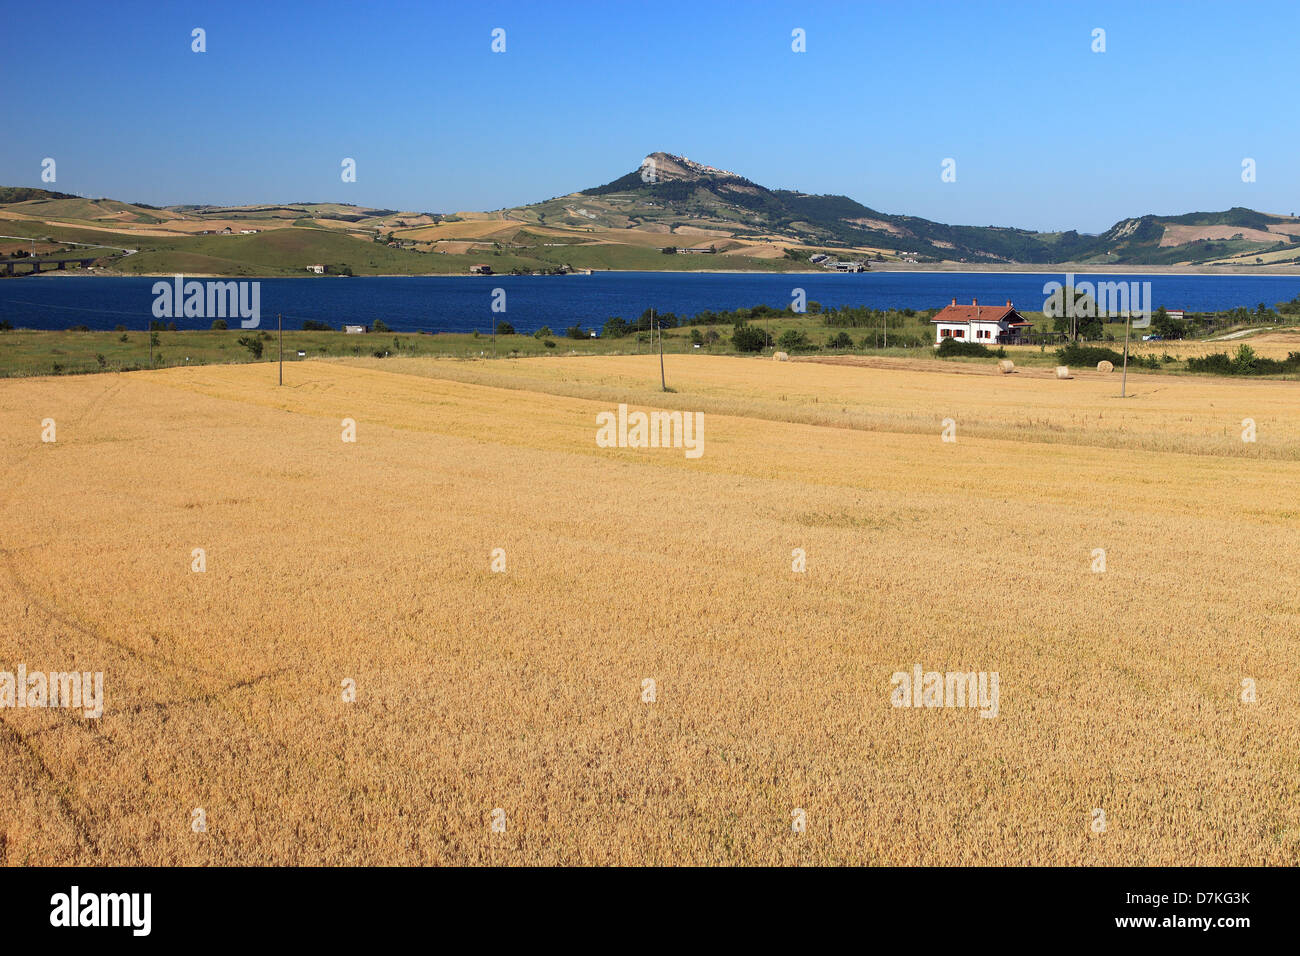 Italy Campania wheat field lake Conza view towards Cairano - Stock Image